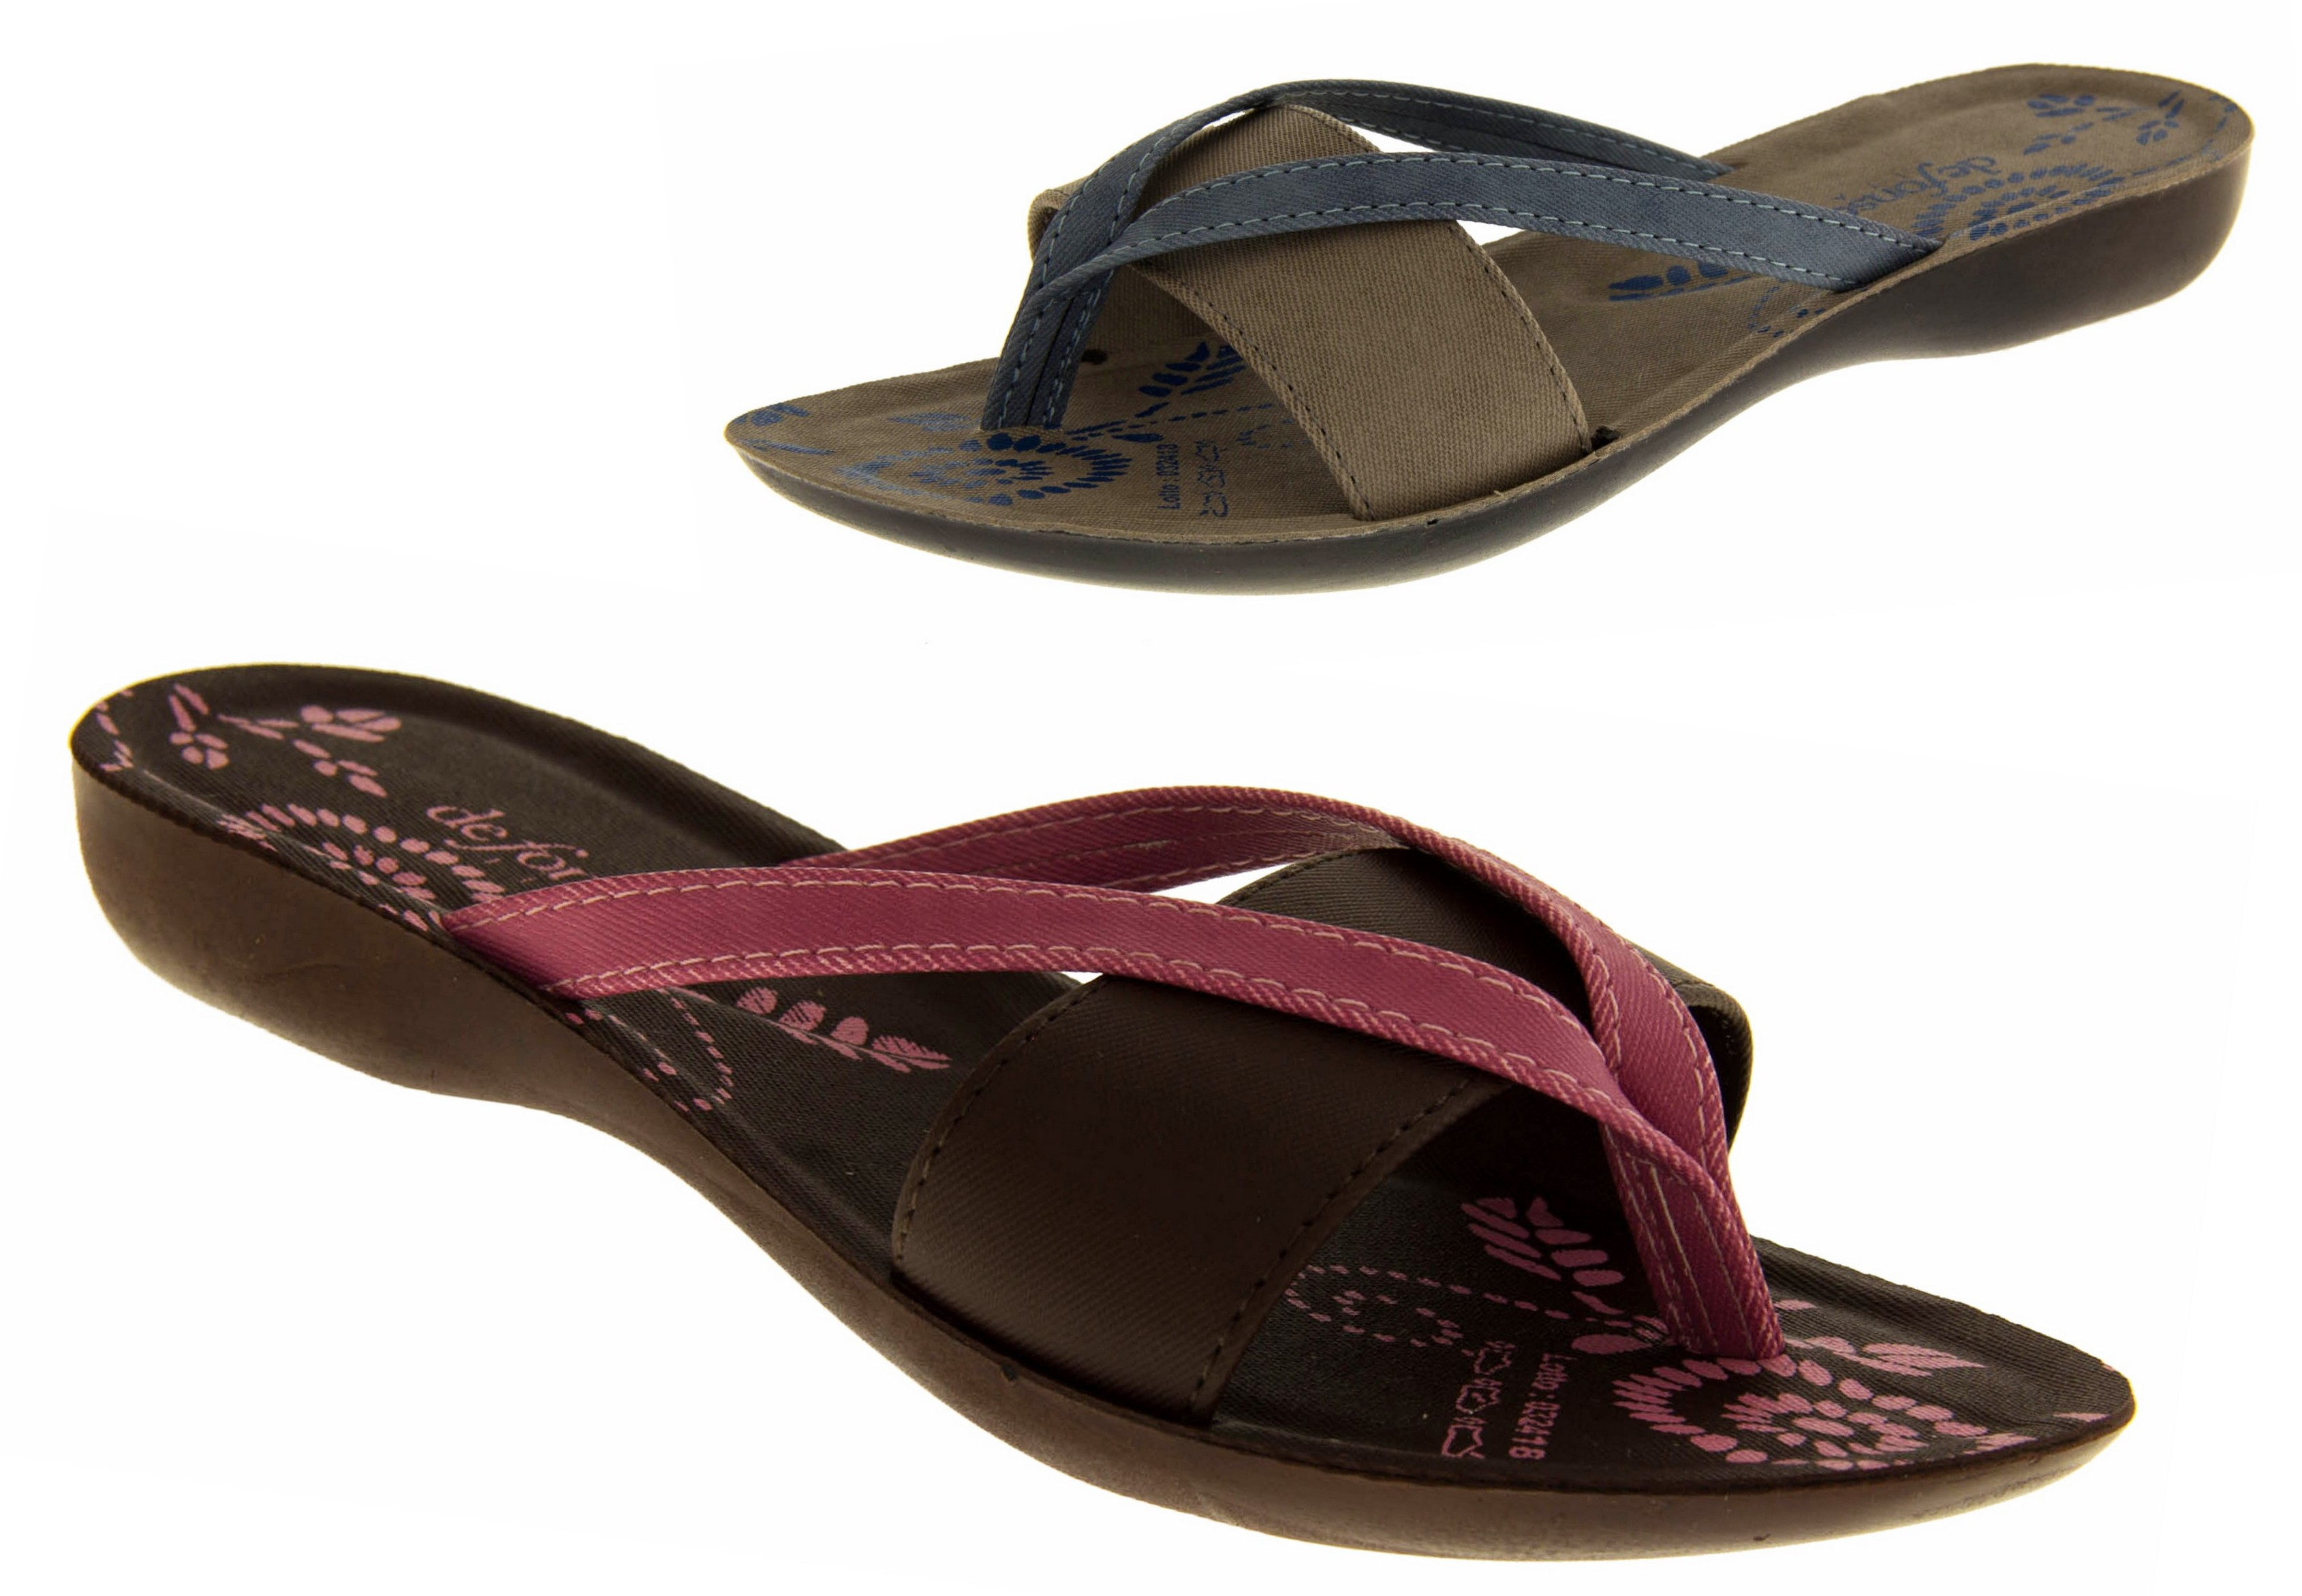 Sandals for Women There are so many different styles of sandals, it's hard to pick just one! Lucky for you, Payless carries a wide variety of women's sandals so you'll always find just the right pair to match your outfit, whether it's for the office, a day at the beach, or anything in between.